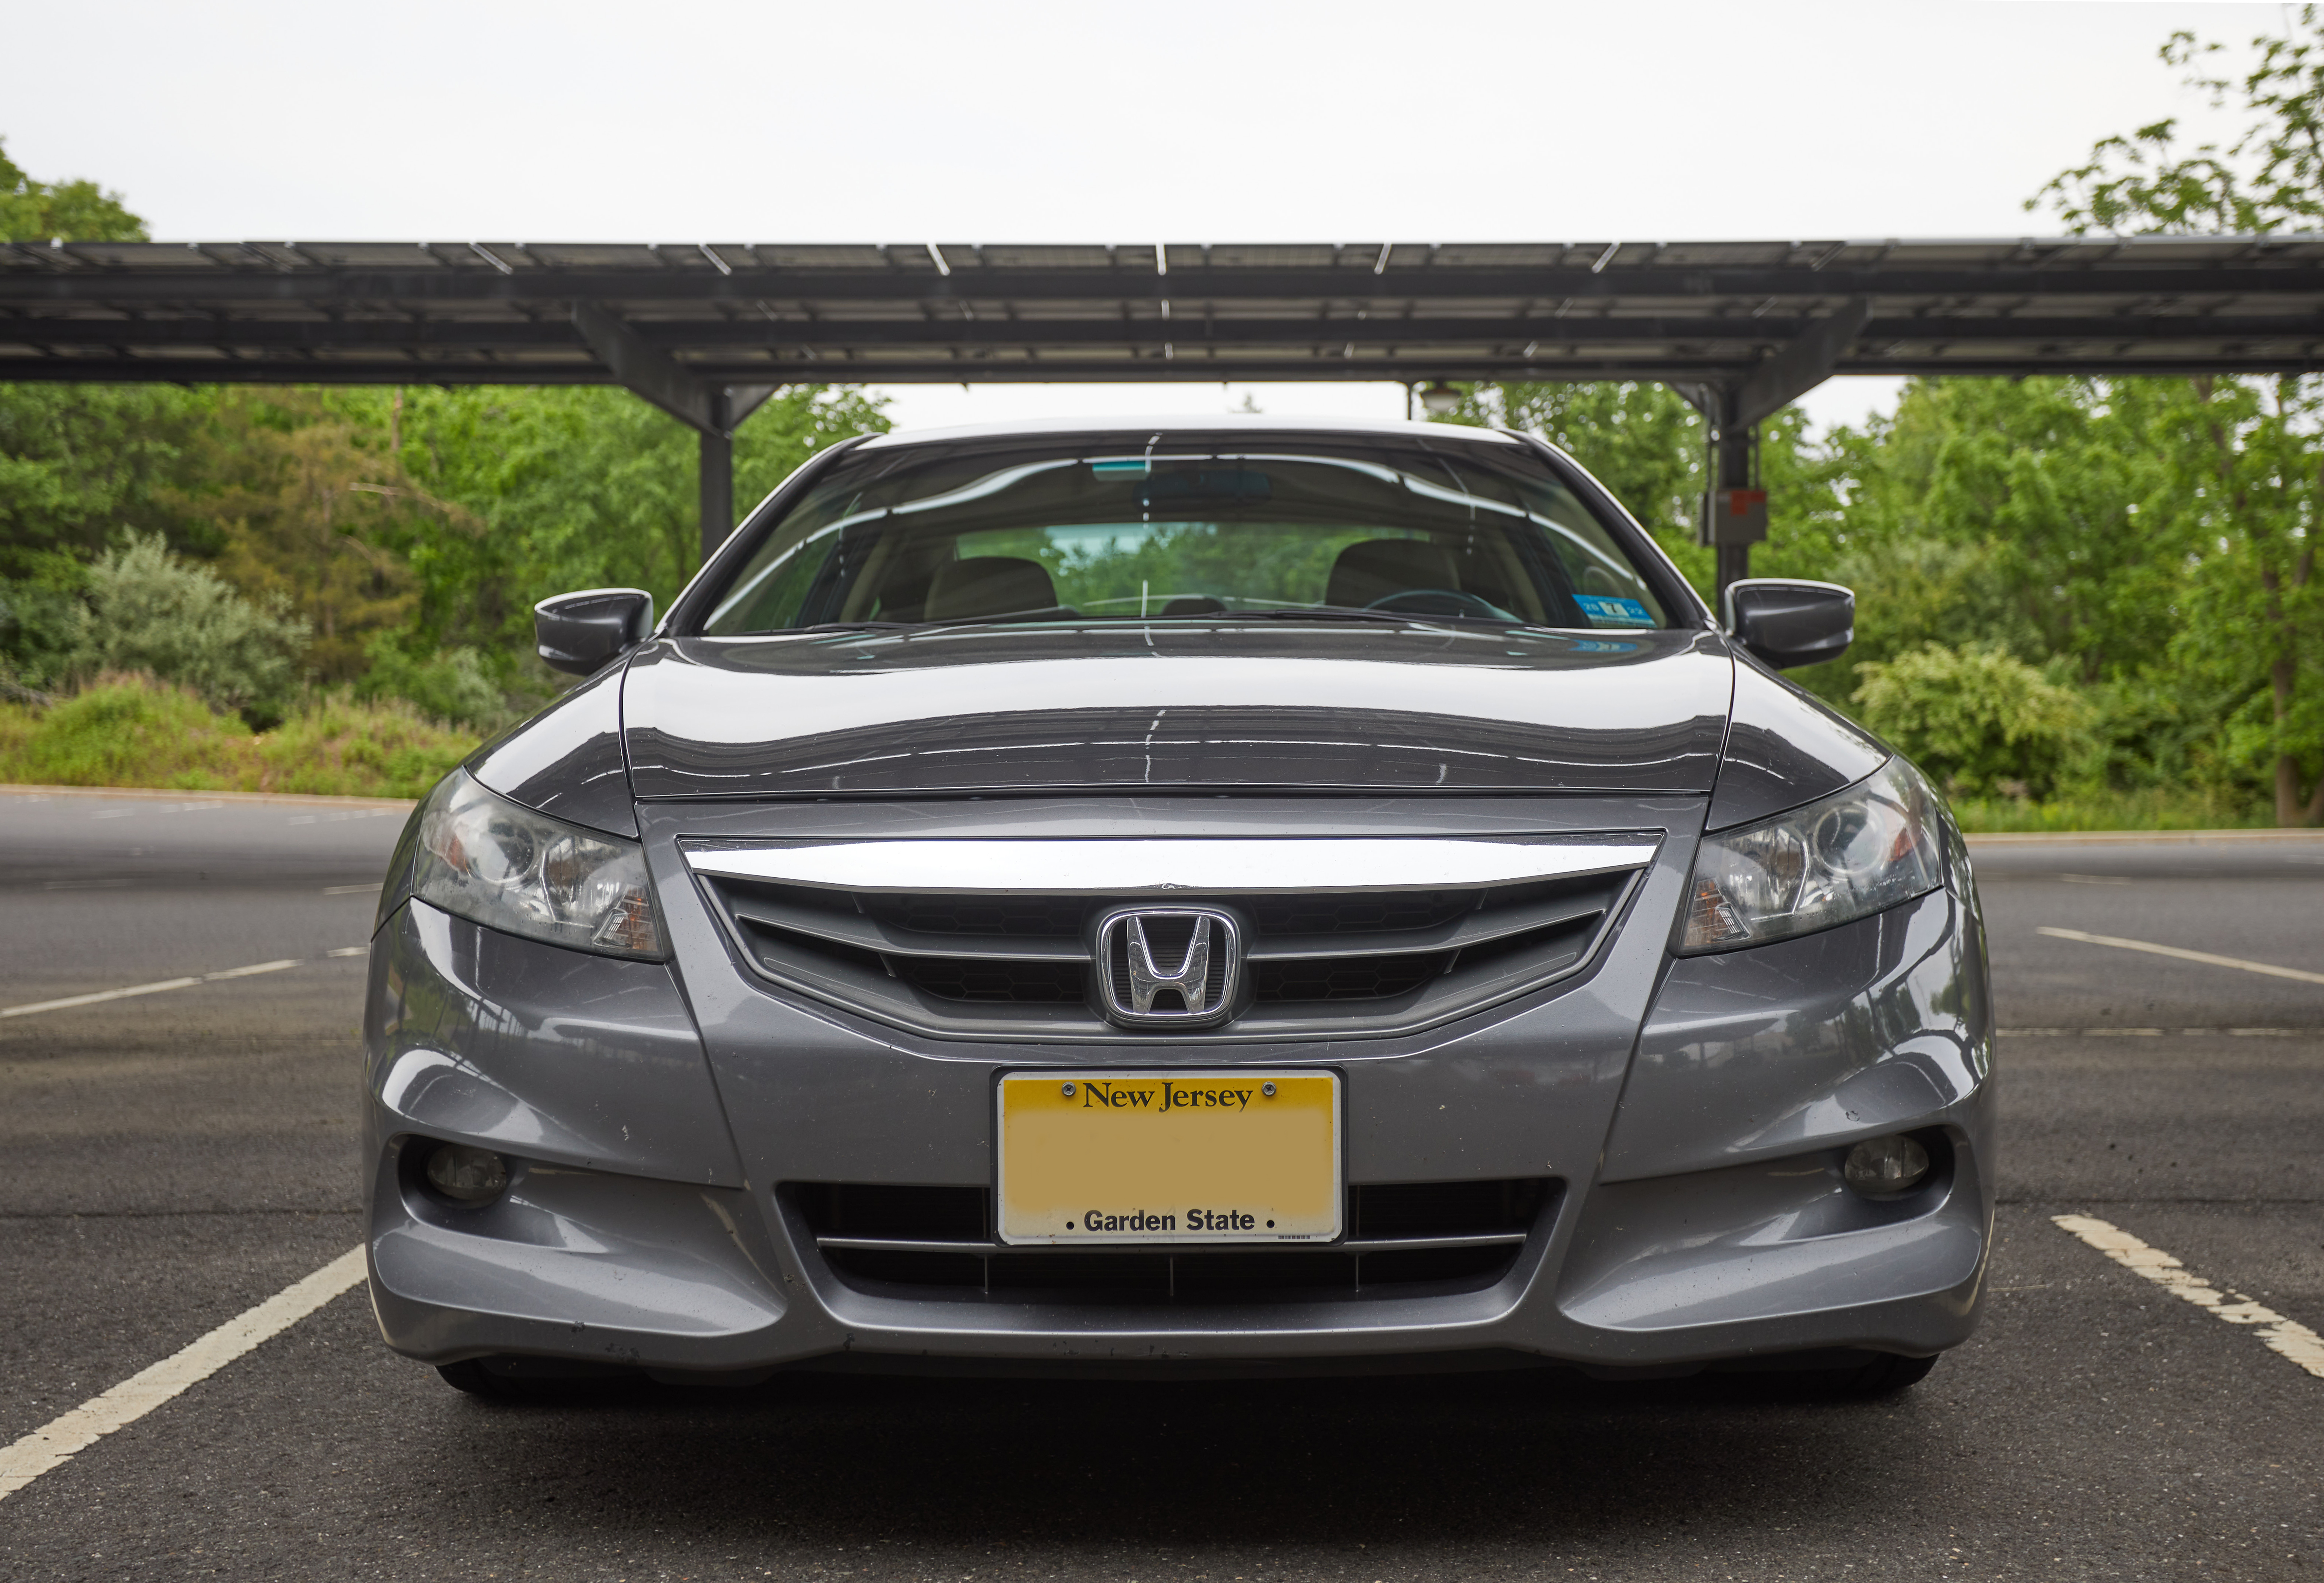 Front end of 2012 Honda Accord coupe, parked in parking lot.